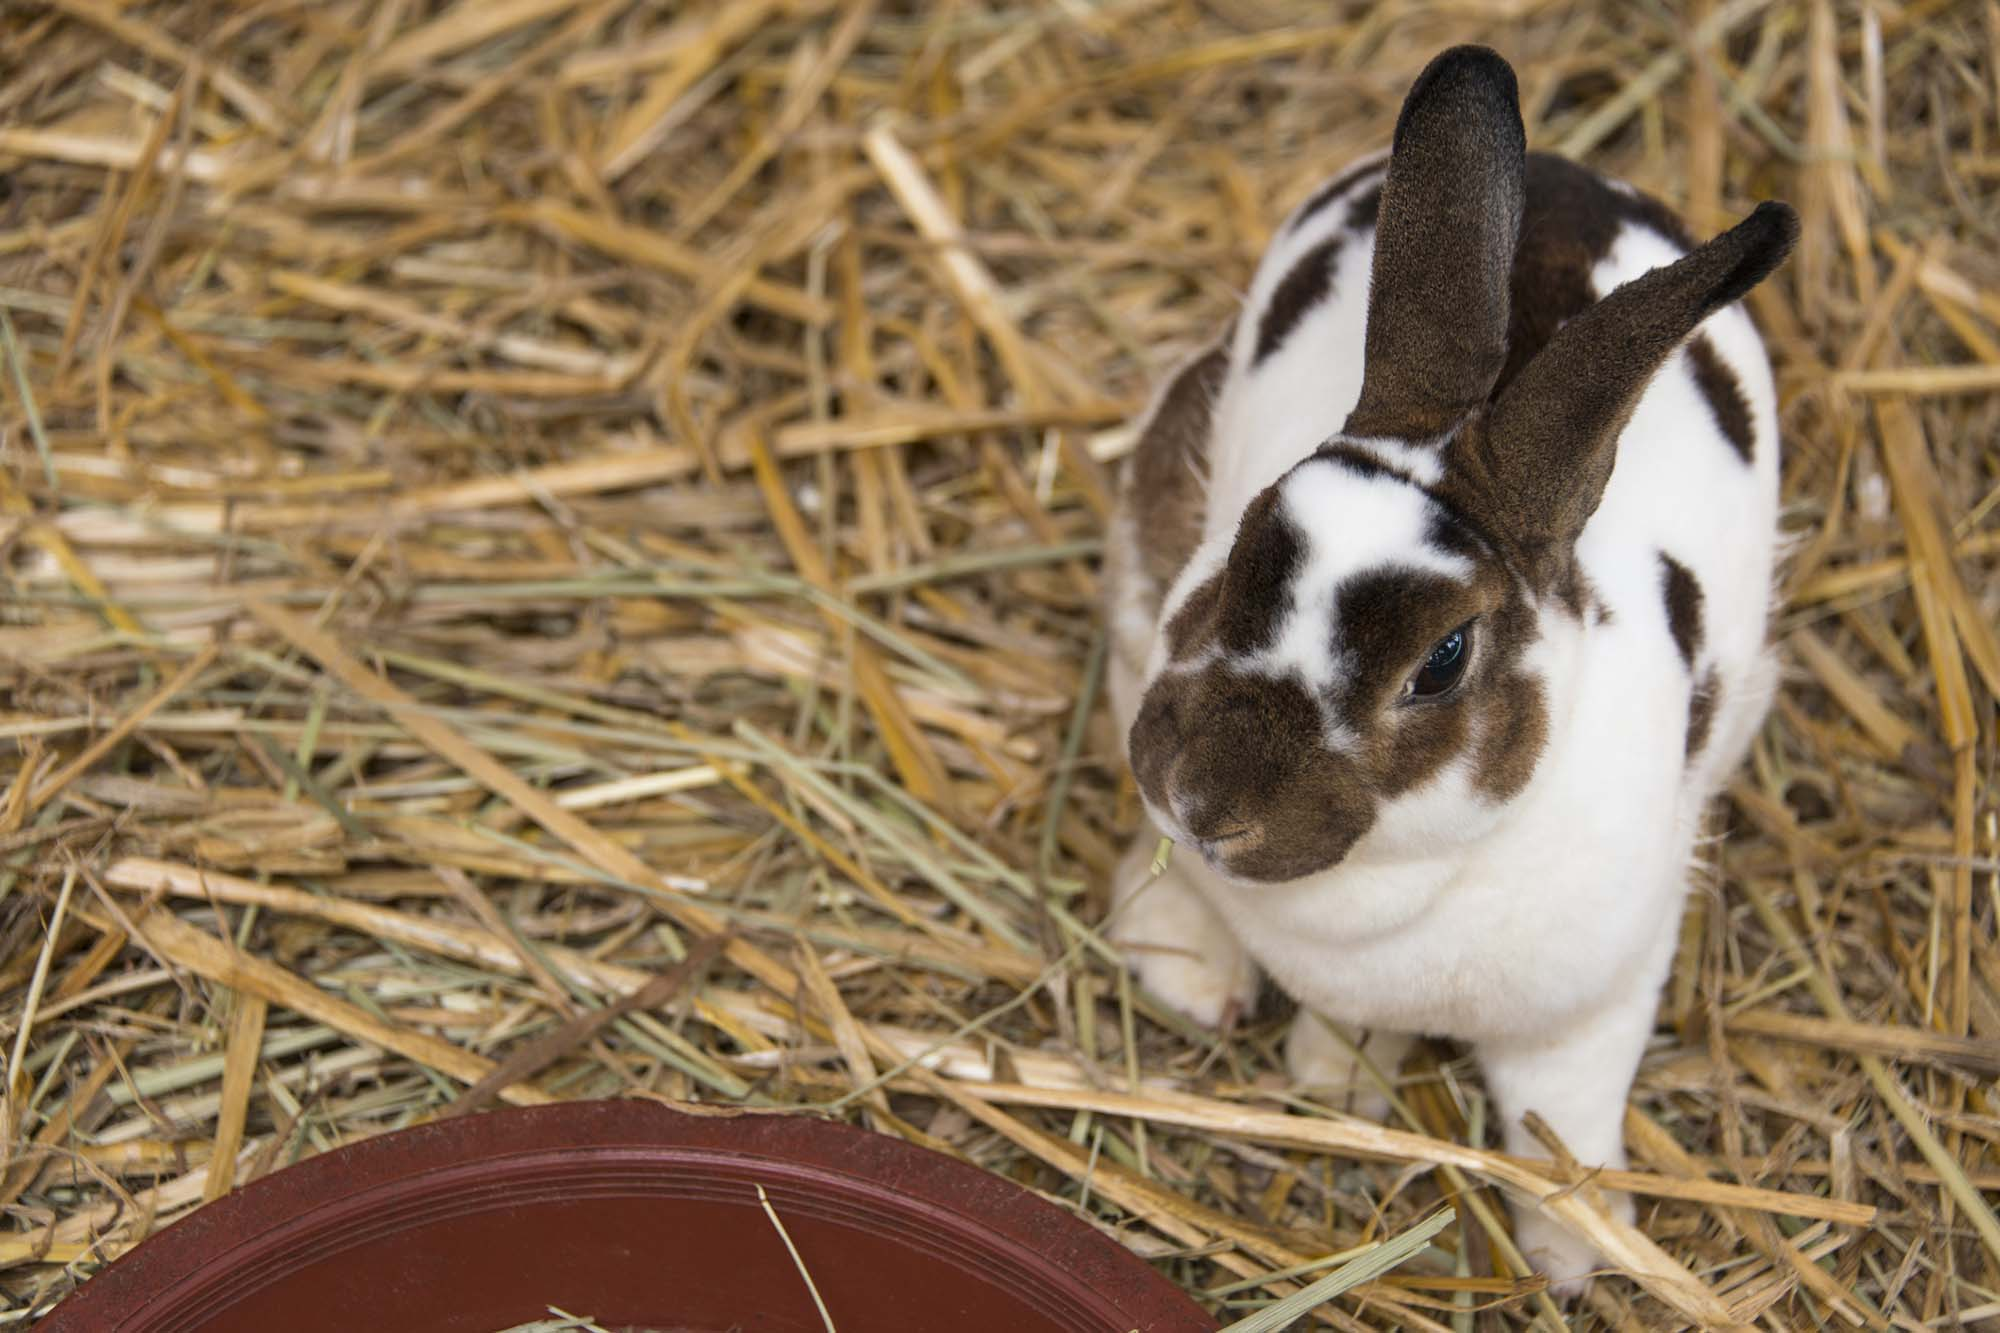 Brown and white rabbit sitting on straw